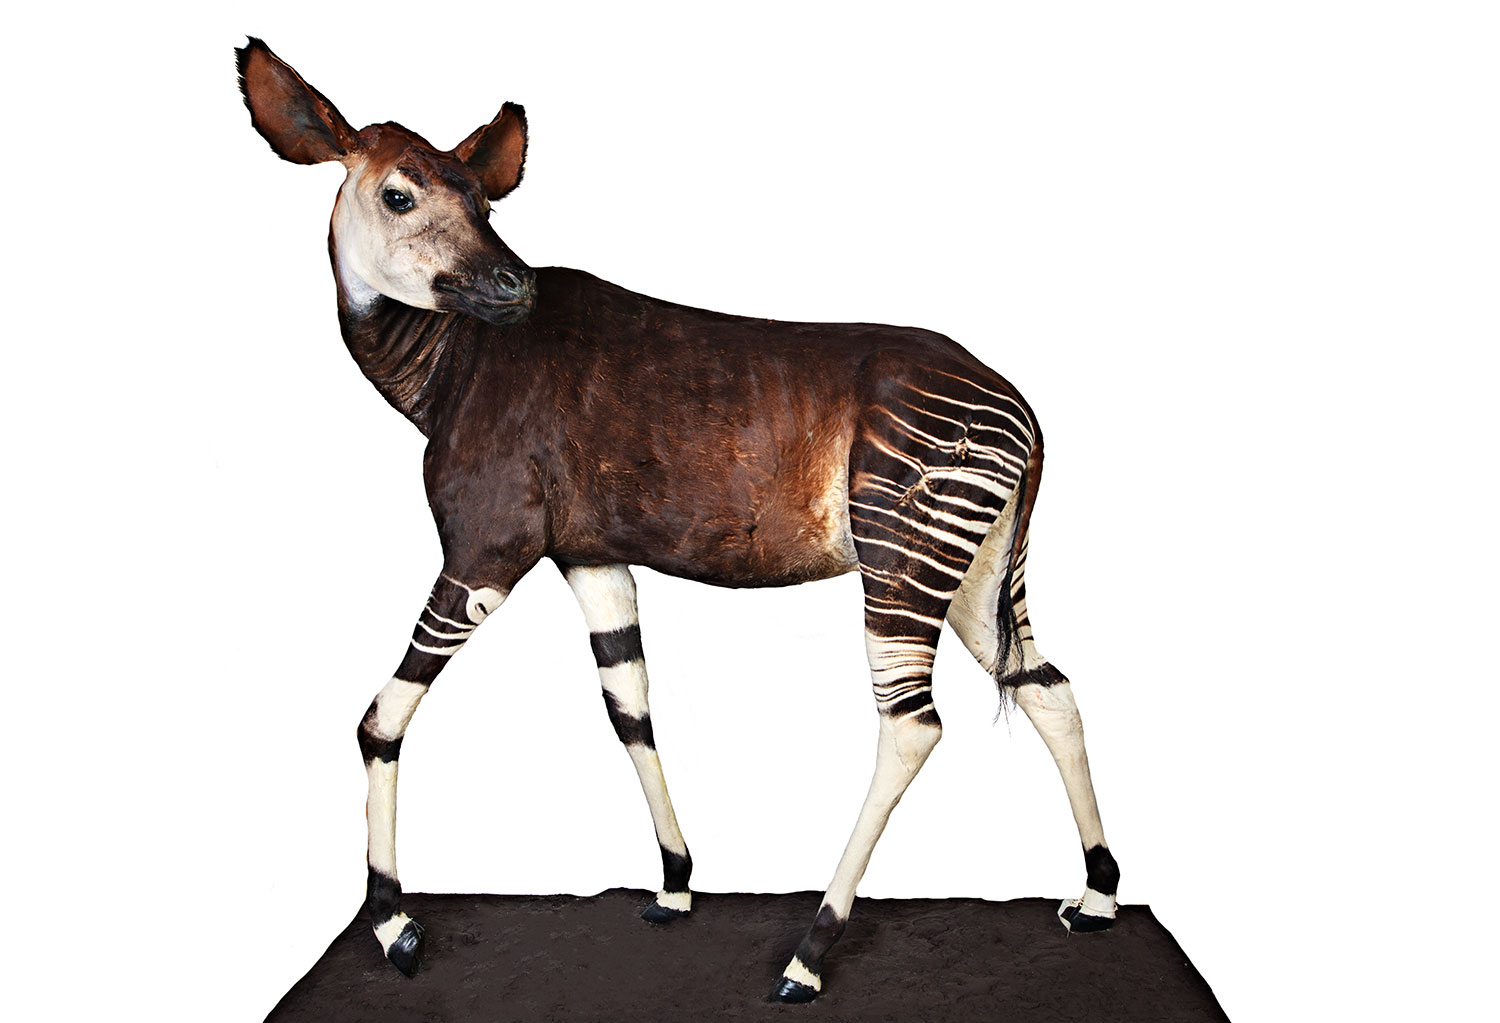 The Okapi is displayed in the Natural History Museum exhibit as part of the Fantastic Beasts: The Wonder of Nature exhibit.